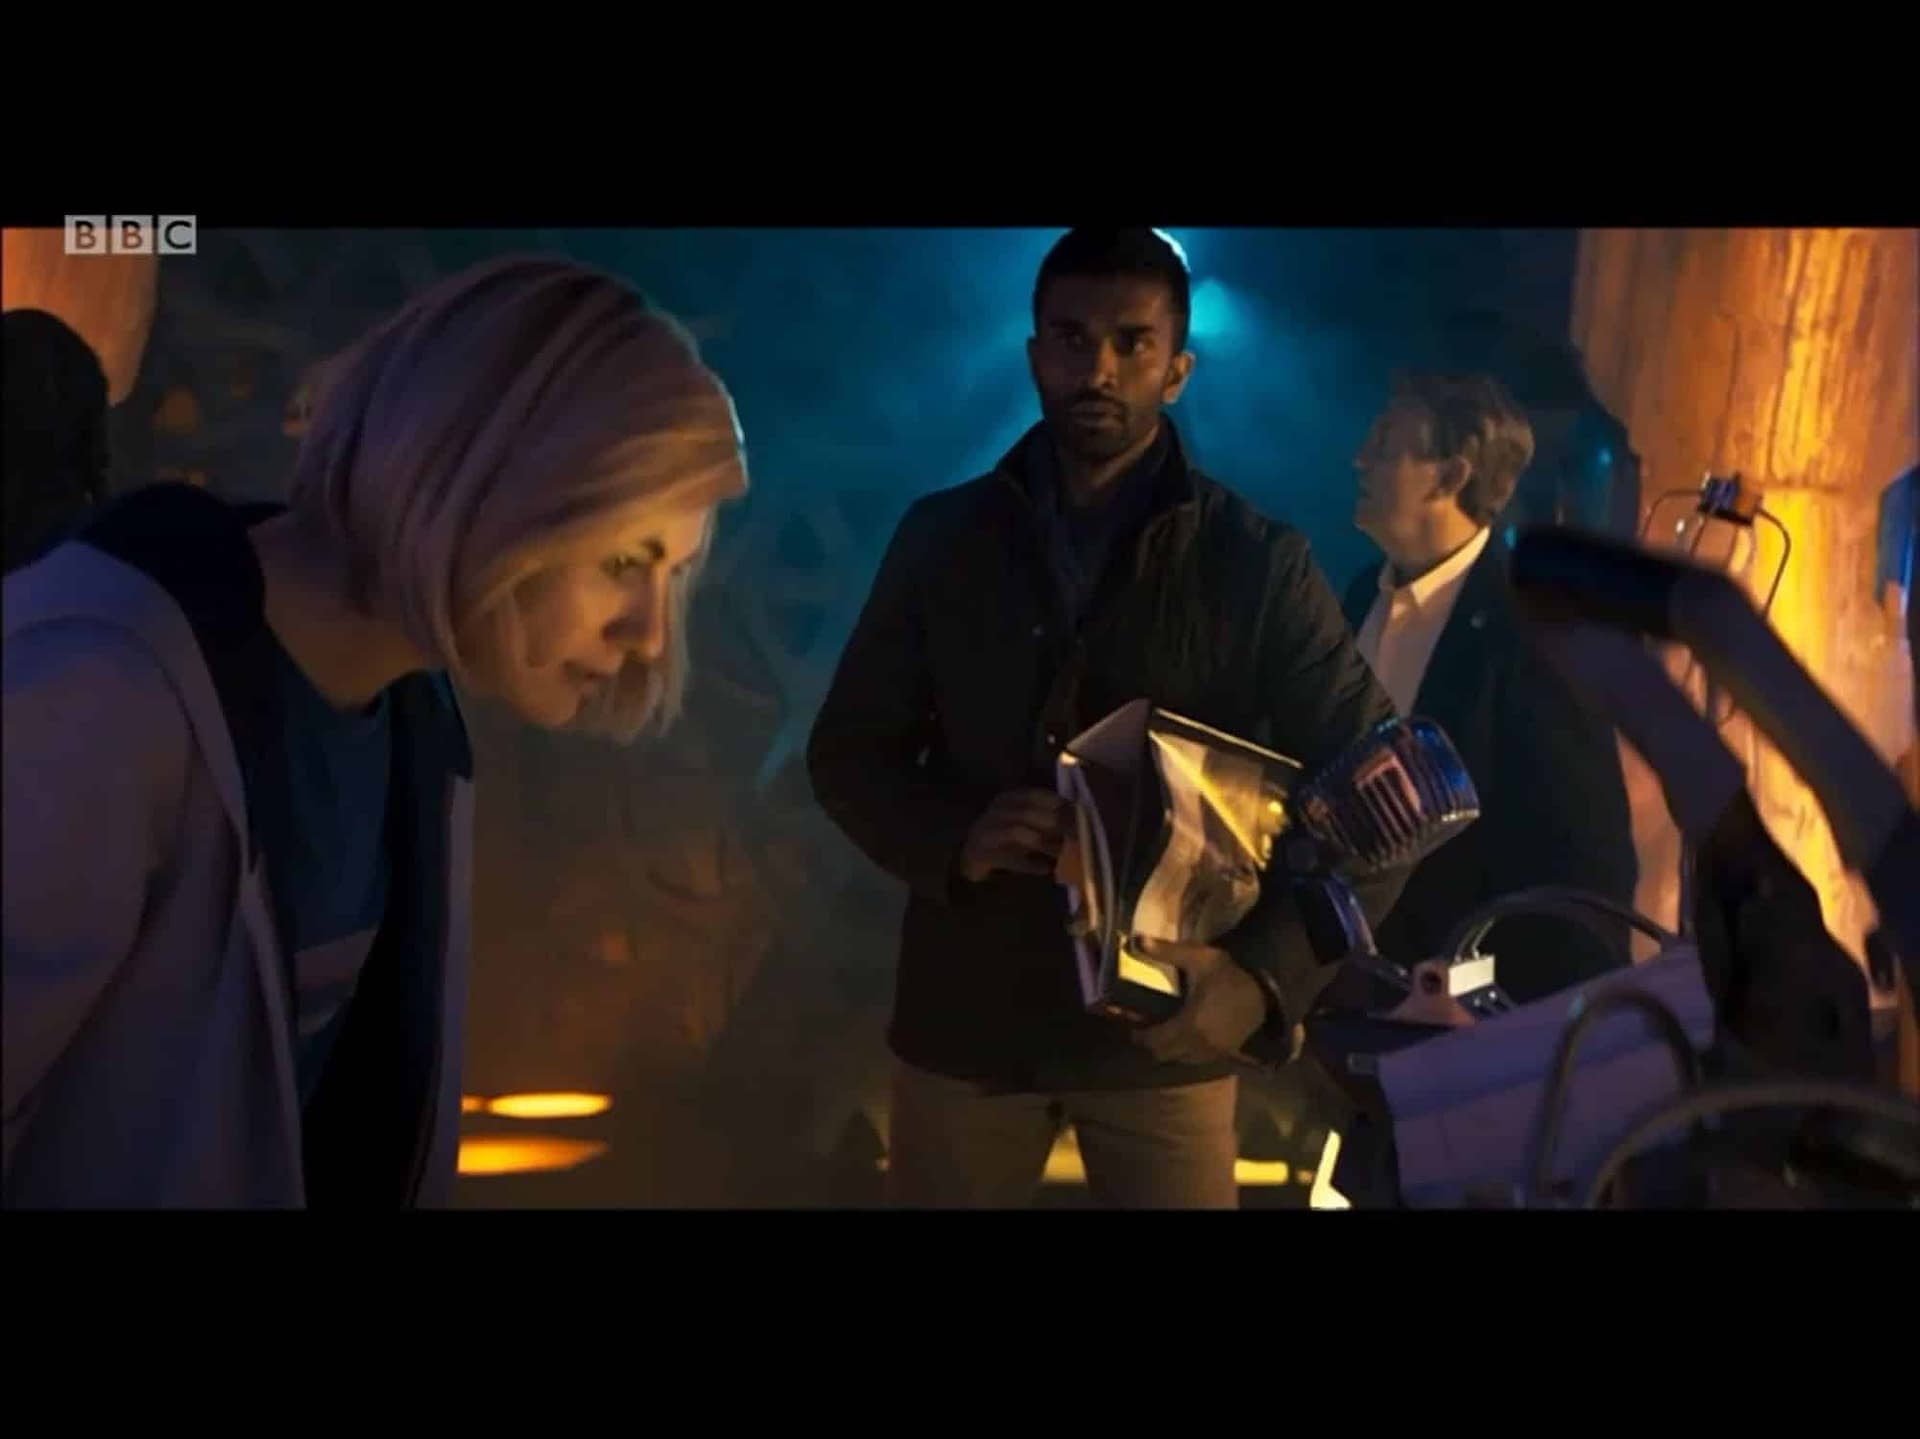 Doctor Who 'Resolution': BBC Drops Spoiler-Filled Behind-the-Scenes Videos